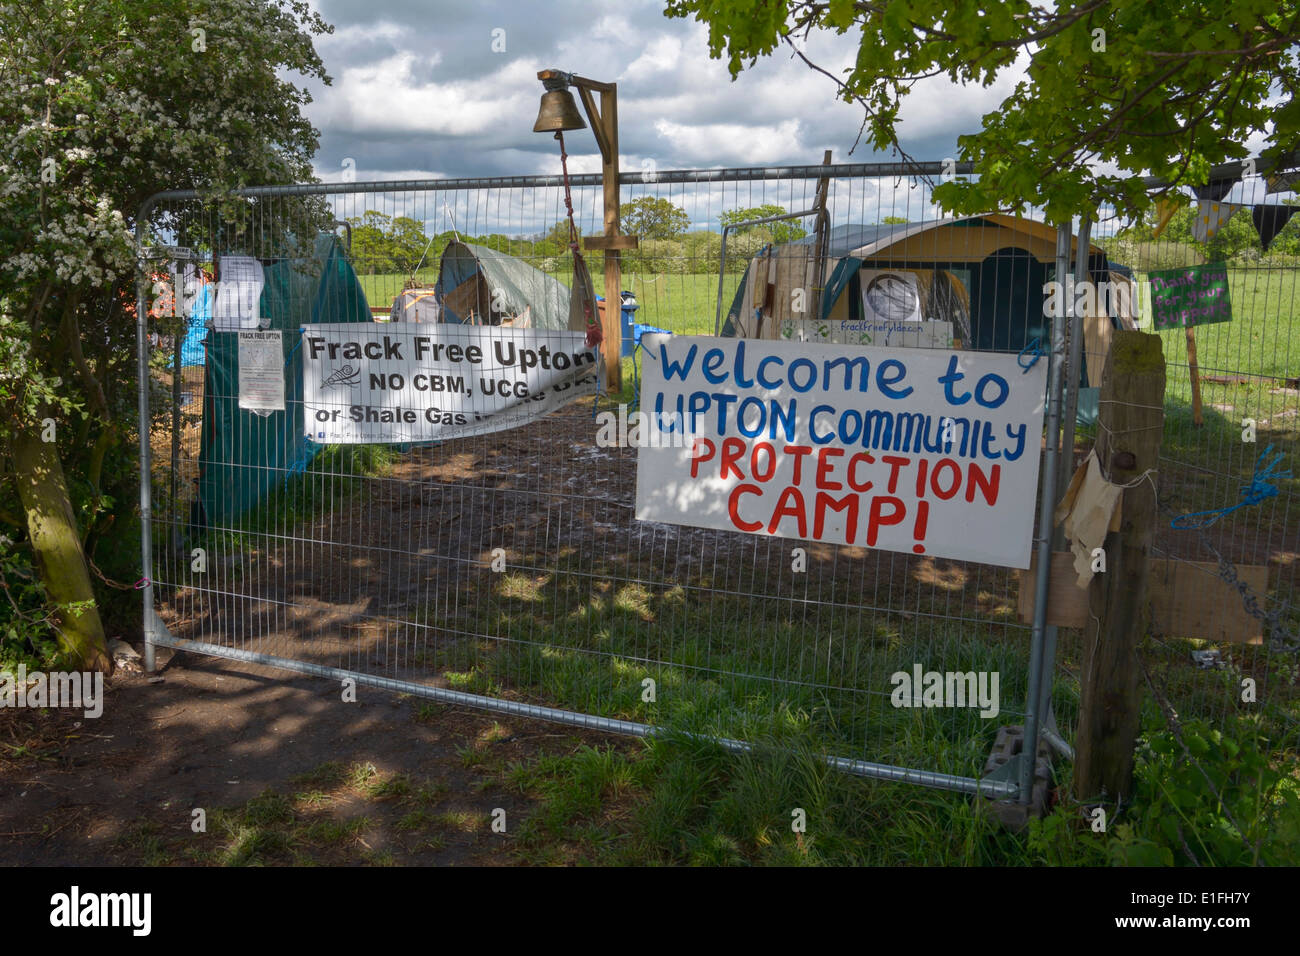 Upton Community Protection Camp, an anti-fracking protest camp near Chester. - Stock Image